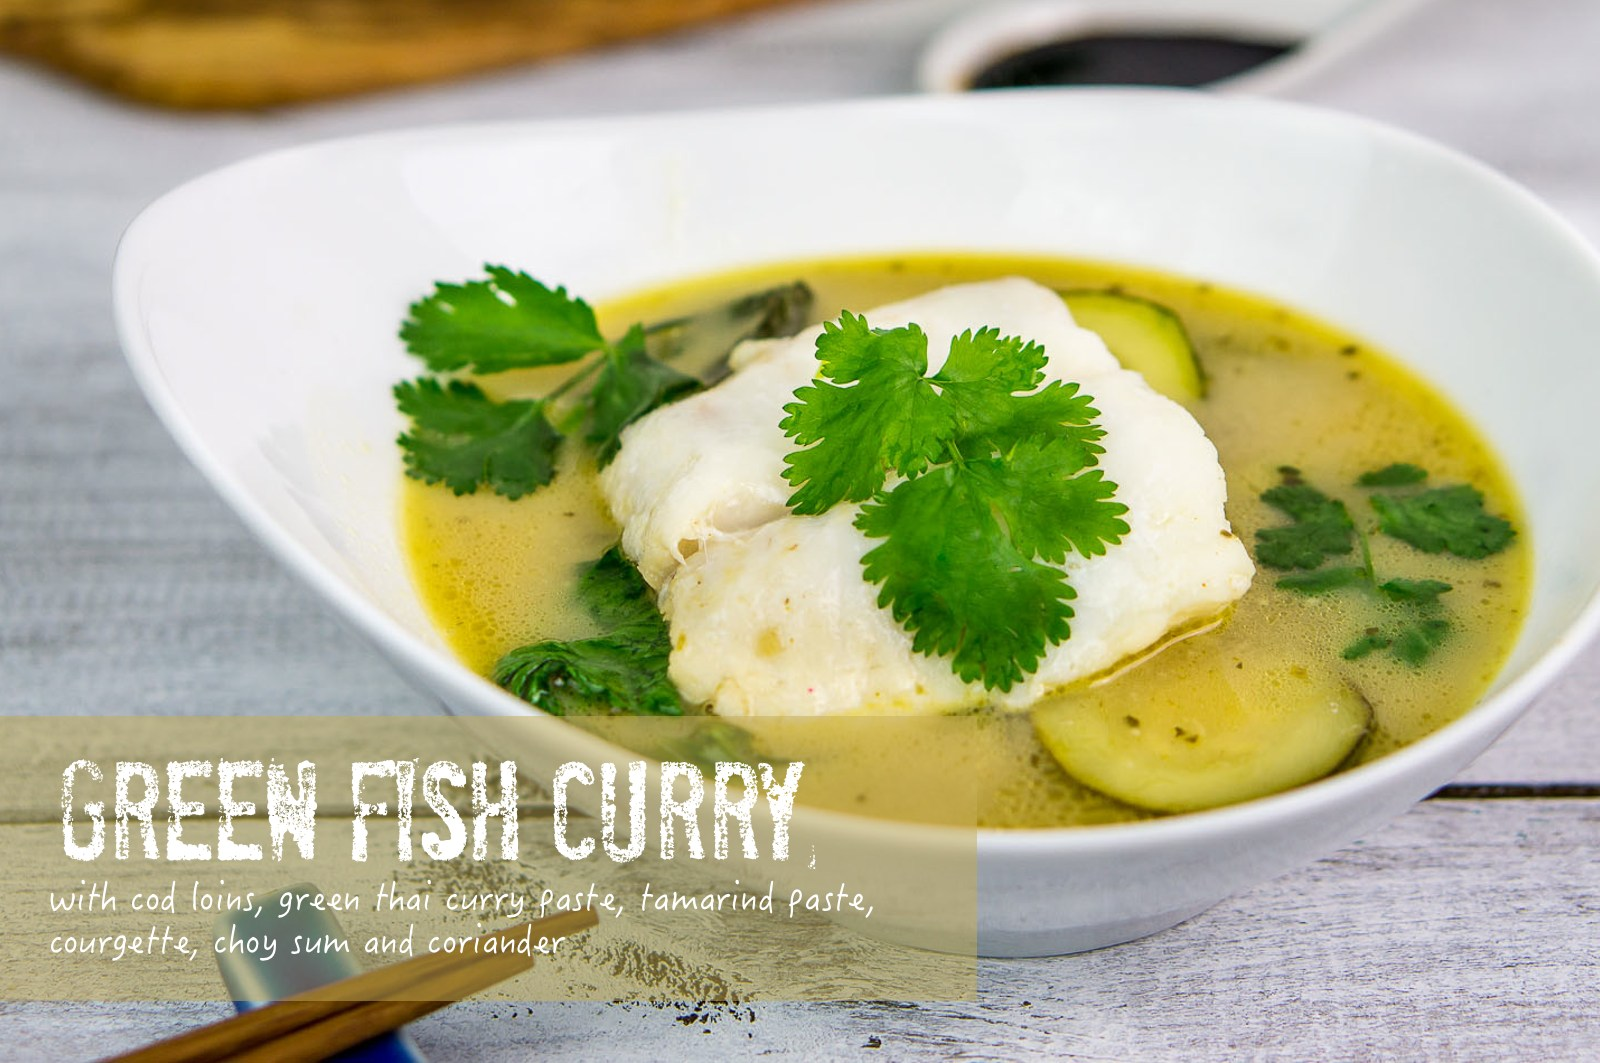 green-fish-curry1